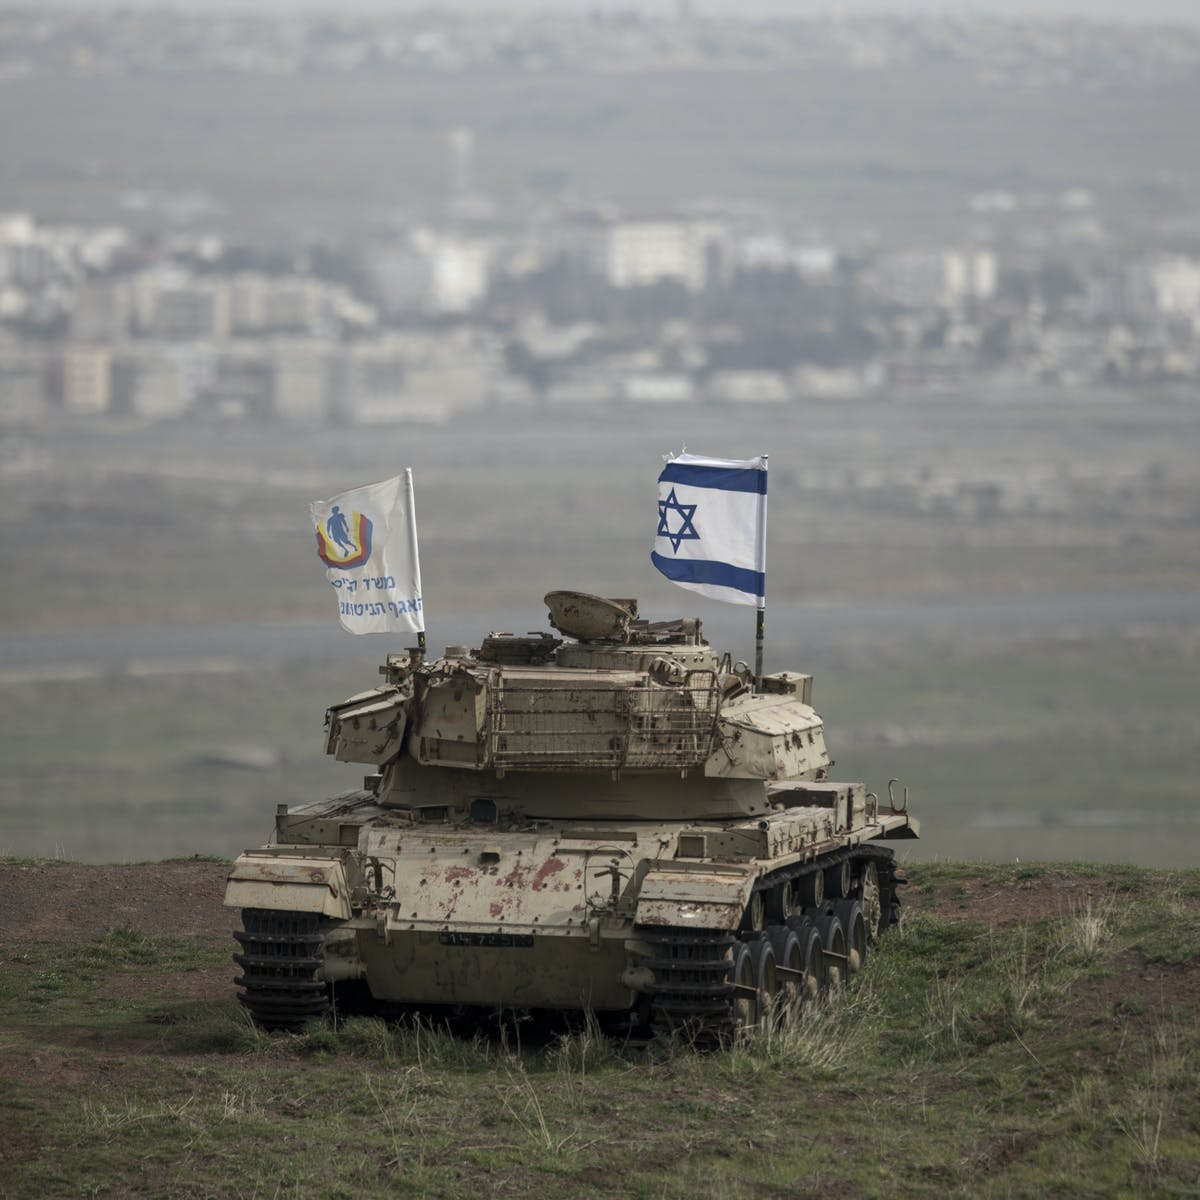 Q&A: Why is the Golan Heights so important?